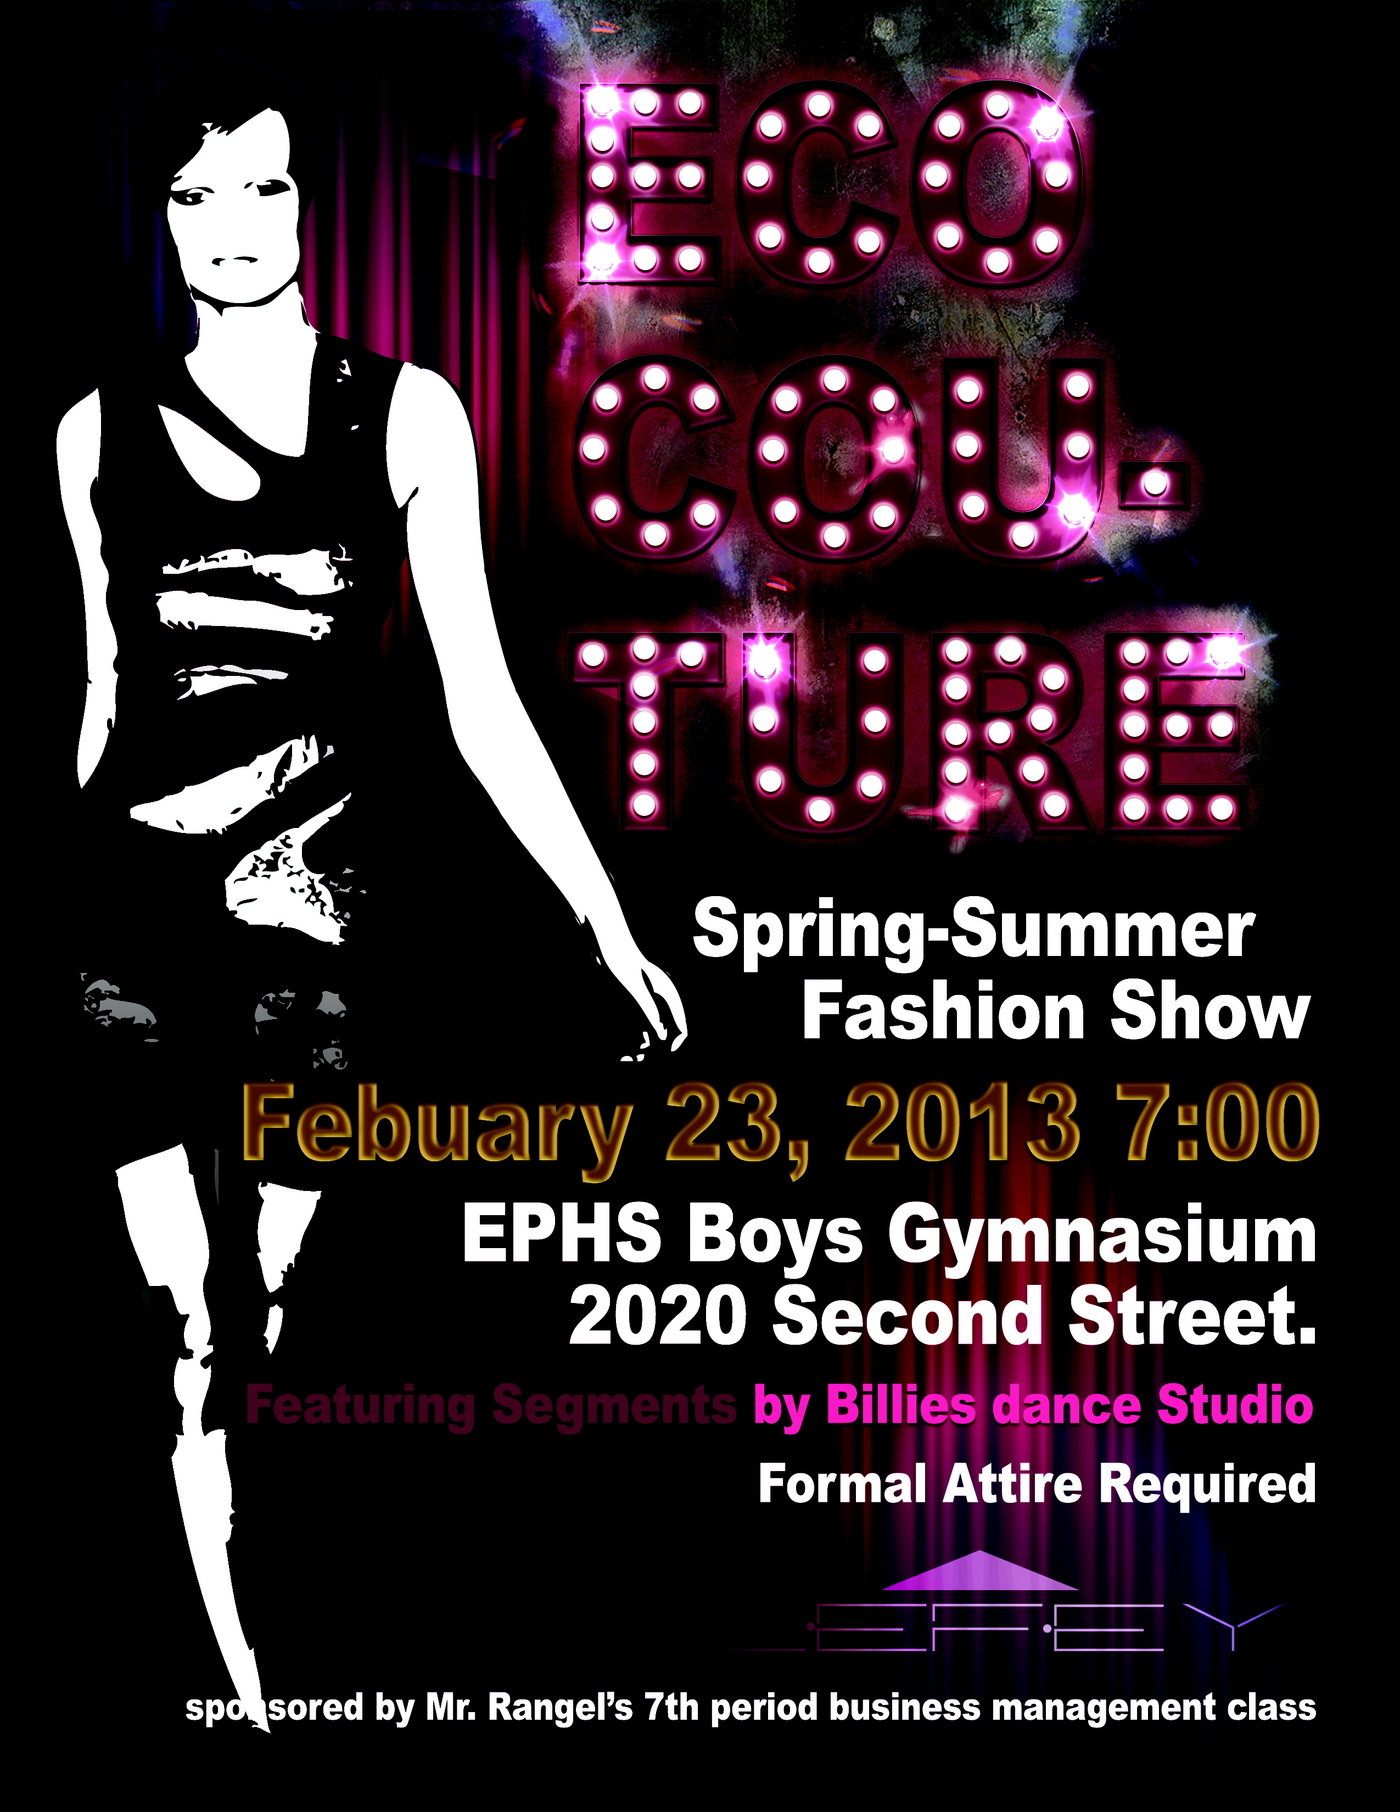 Eco Cou-ture fashion show posters by Michael Guilford at